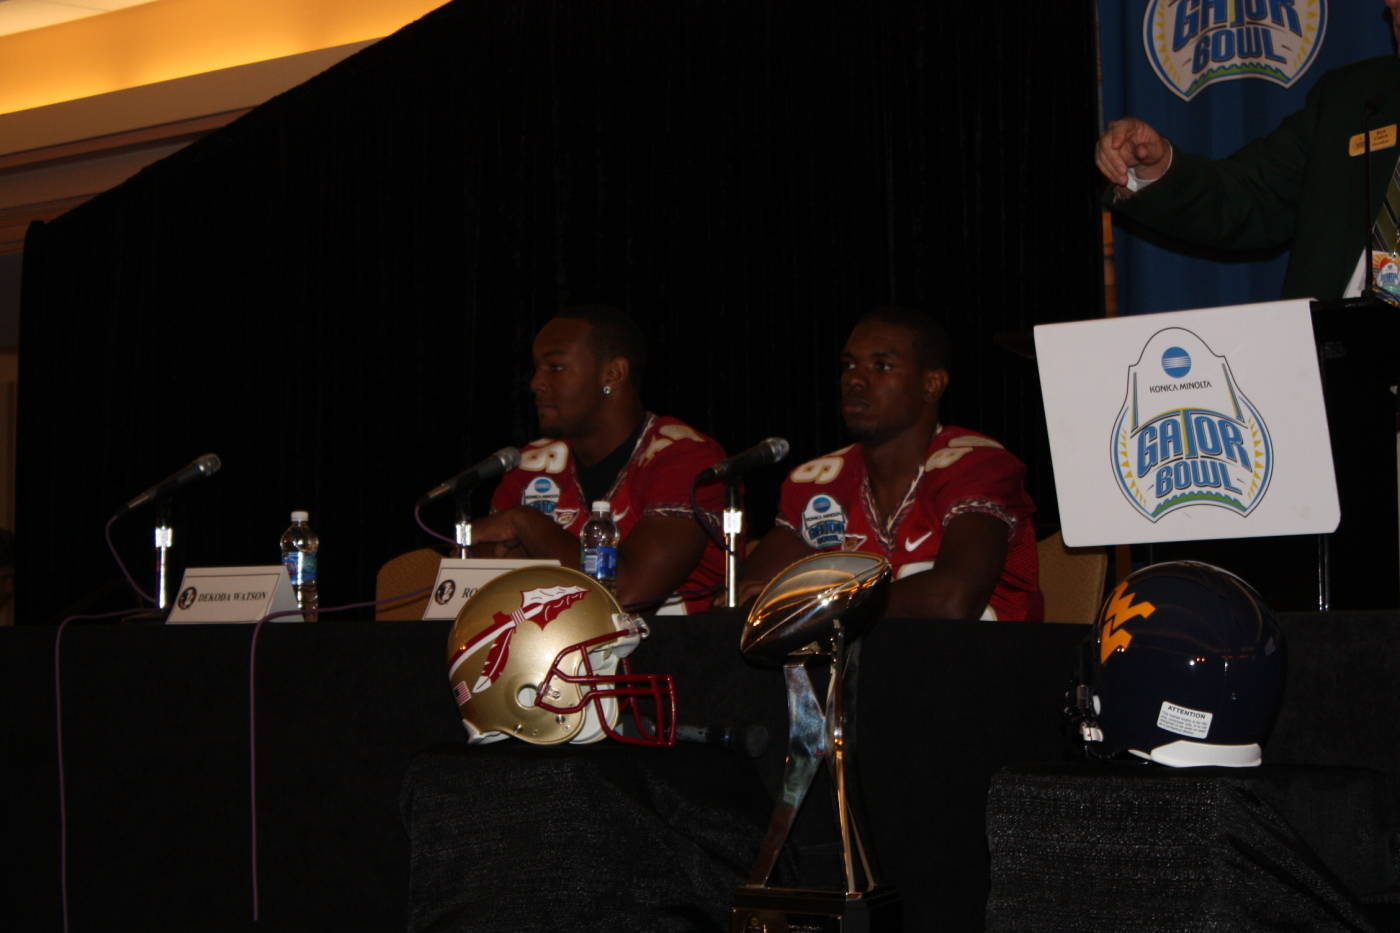 Rod Owens, and Dekoda Watson at the Gator Bowl coaches and players press conference at the Hyatt in Jacksonville.